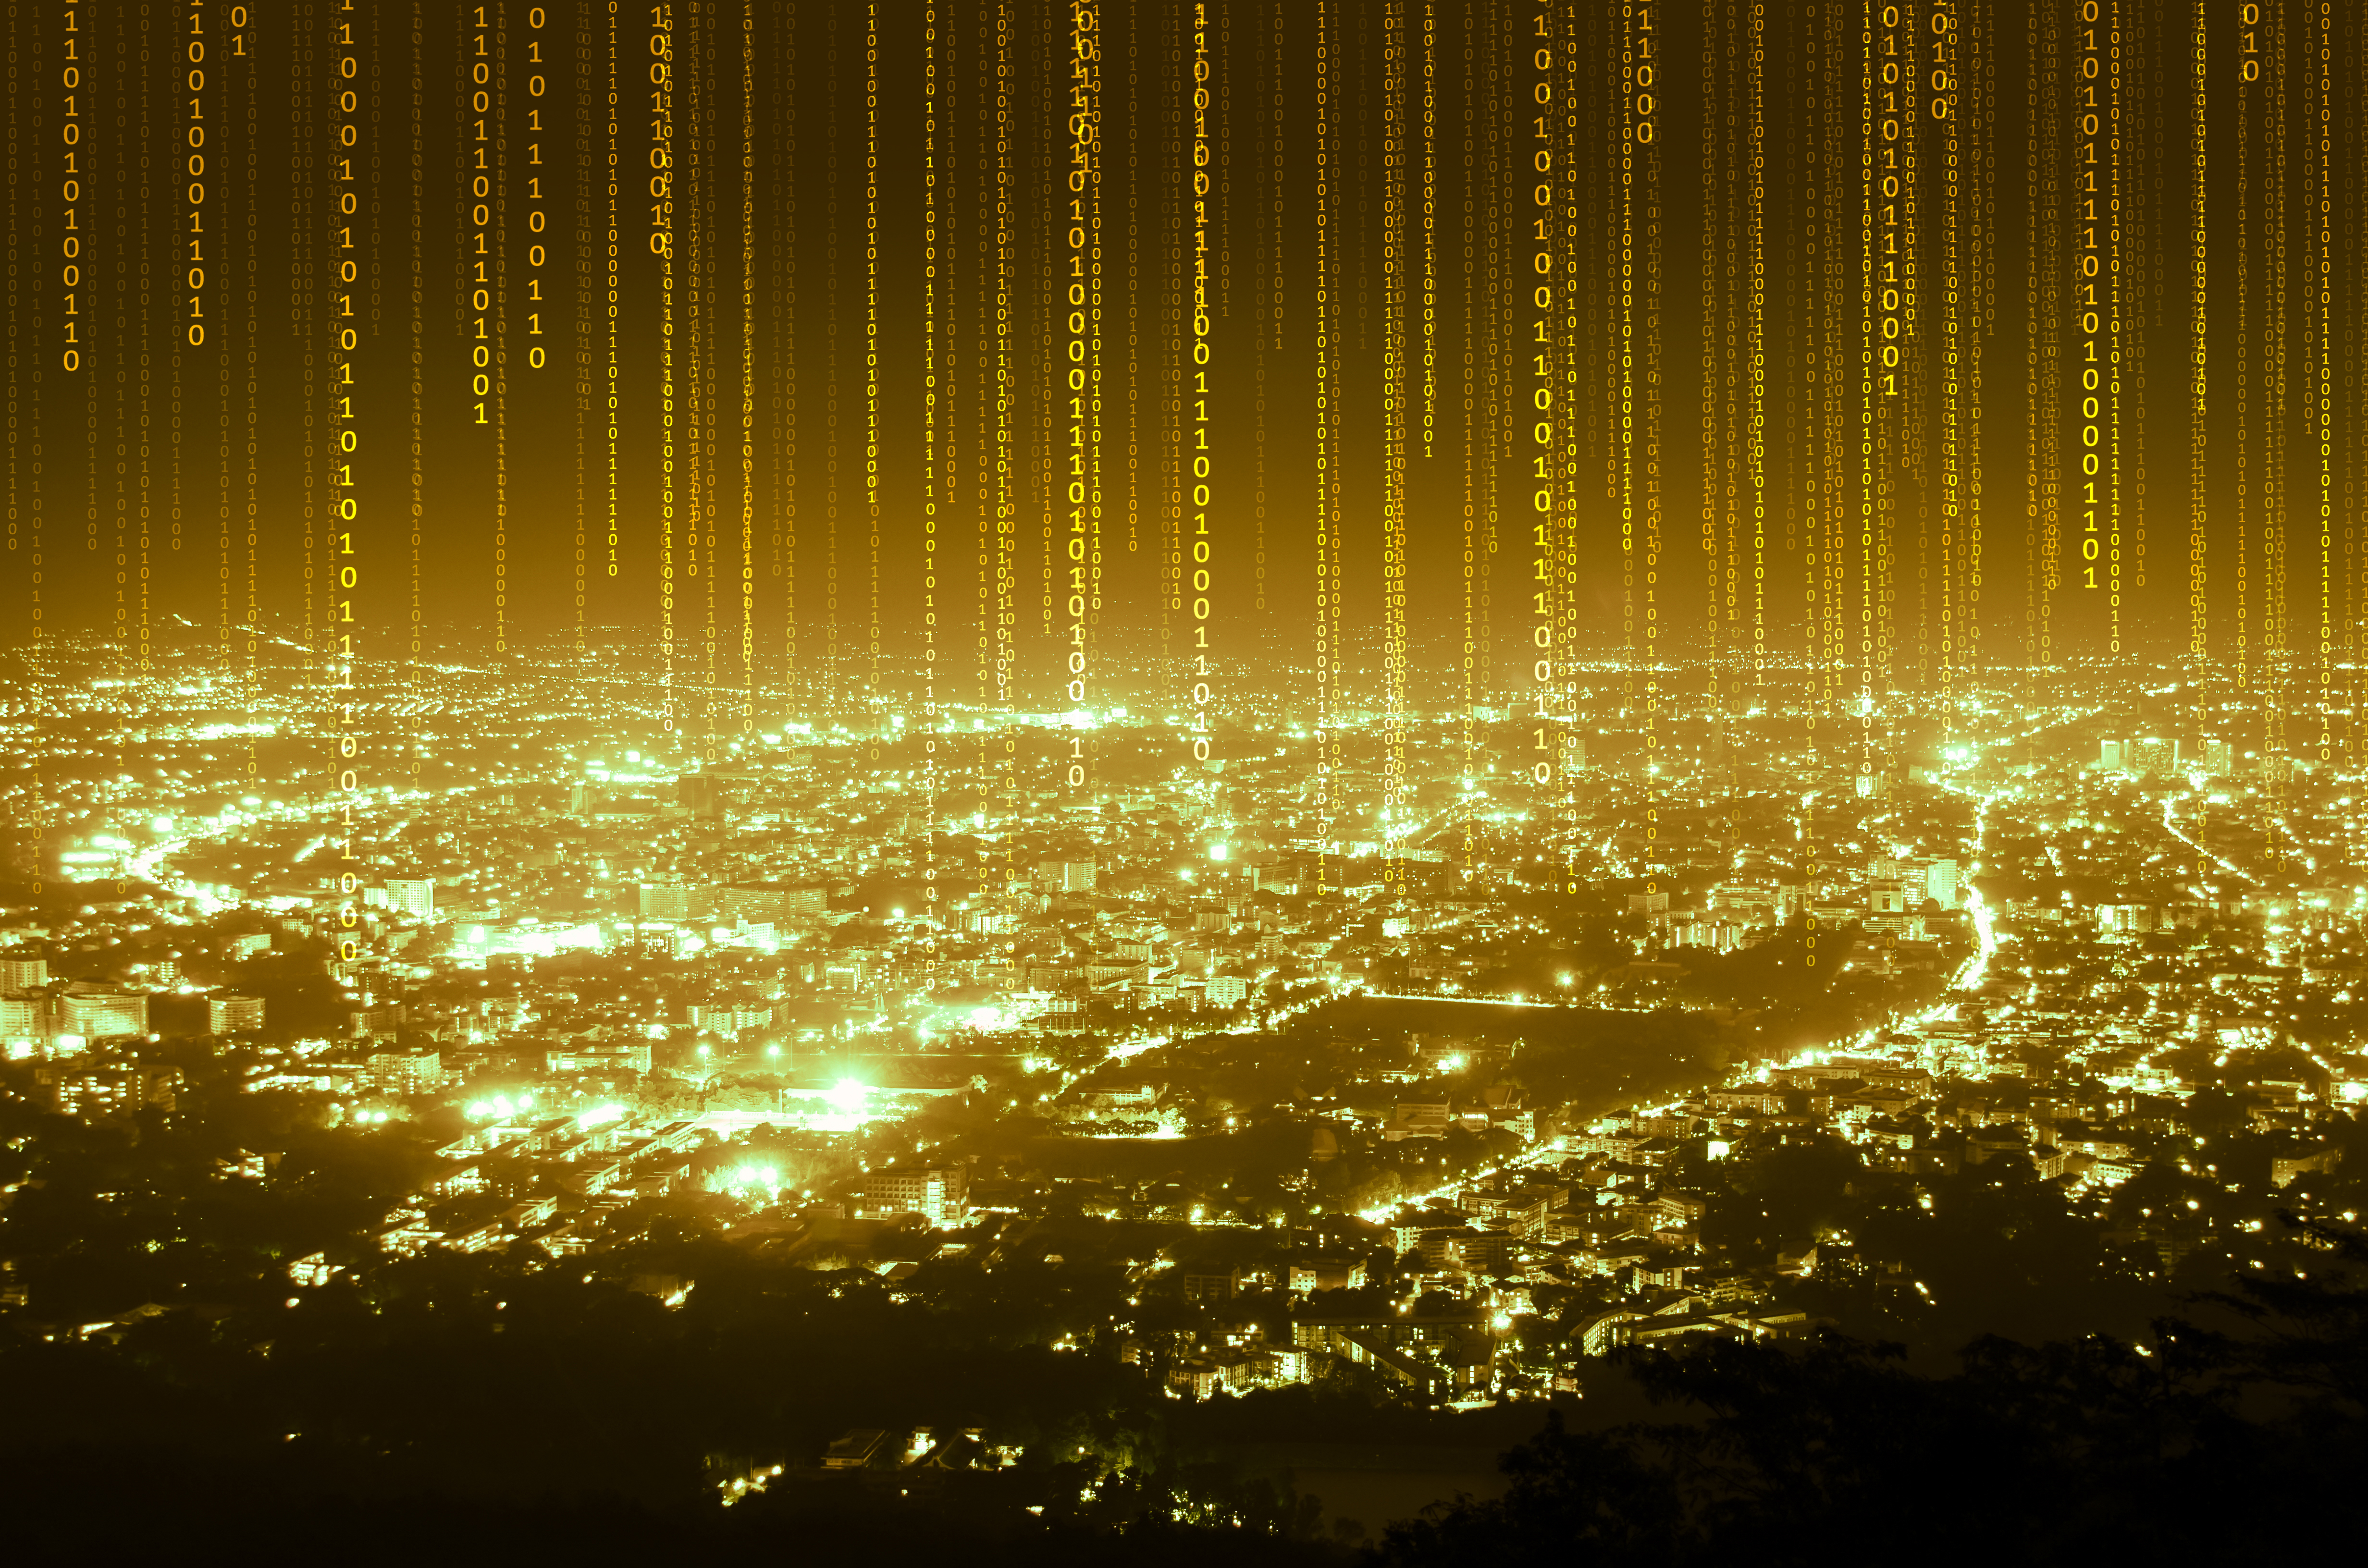 Illuminated gold code streaming from a cityscape.